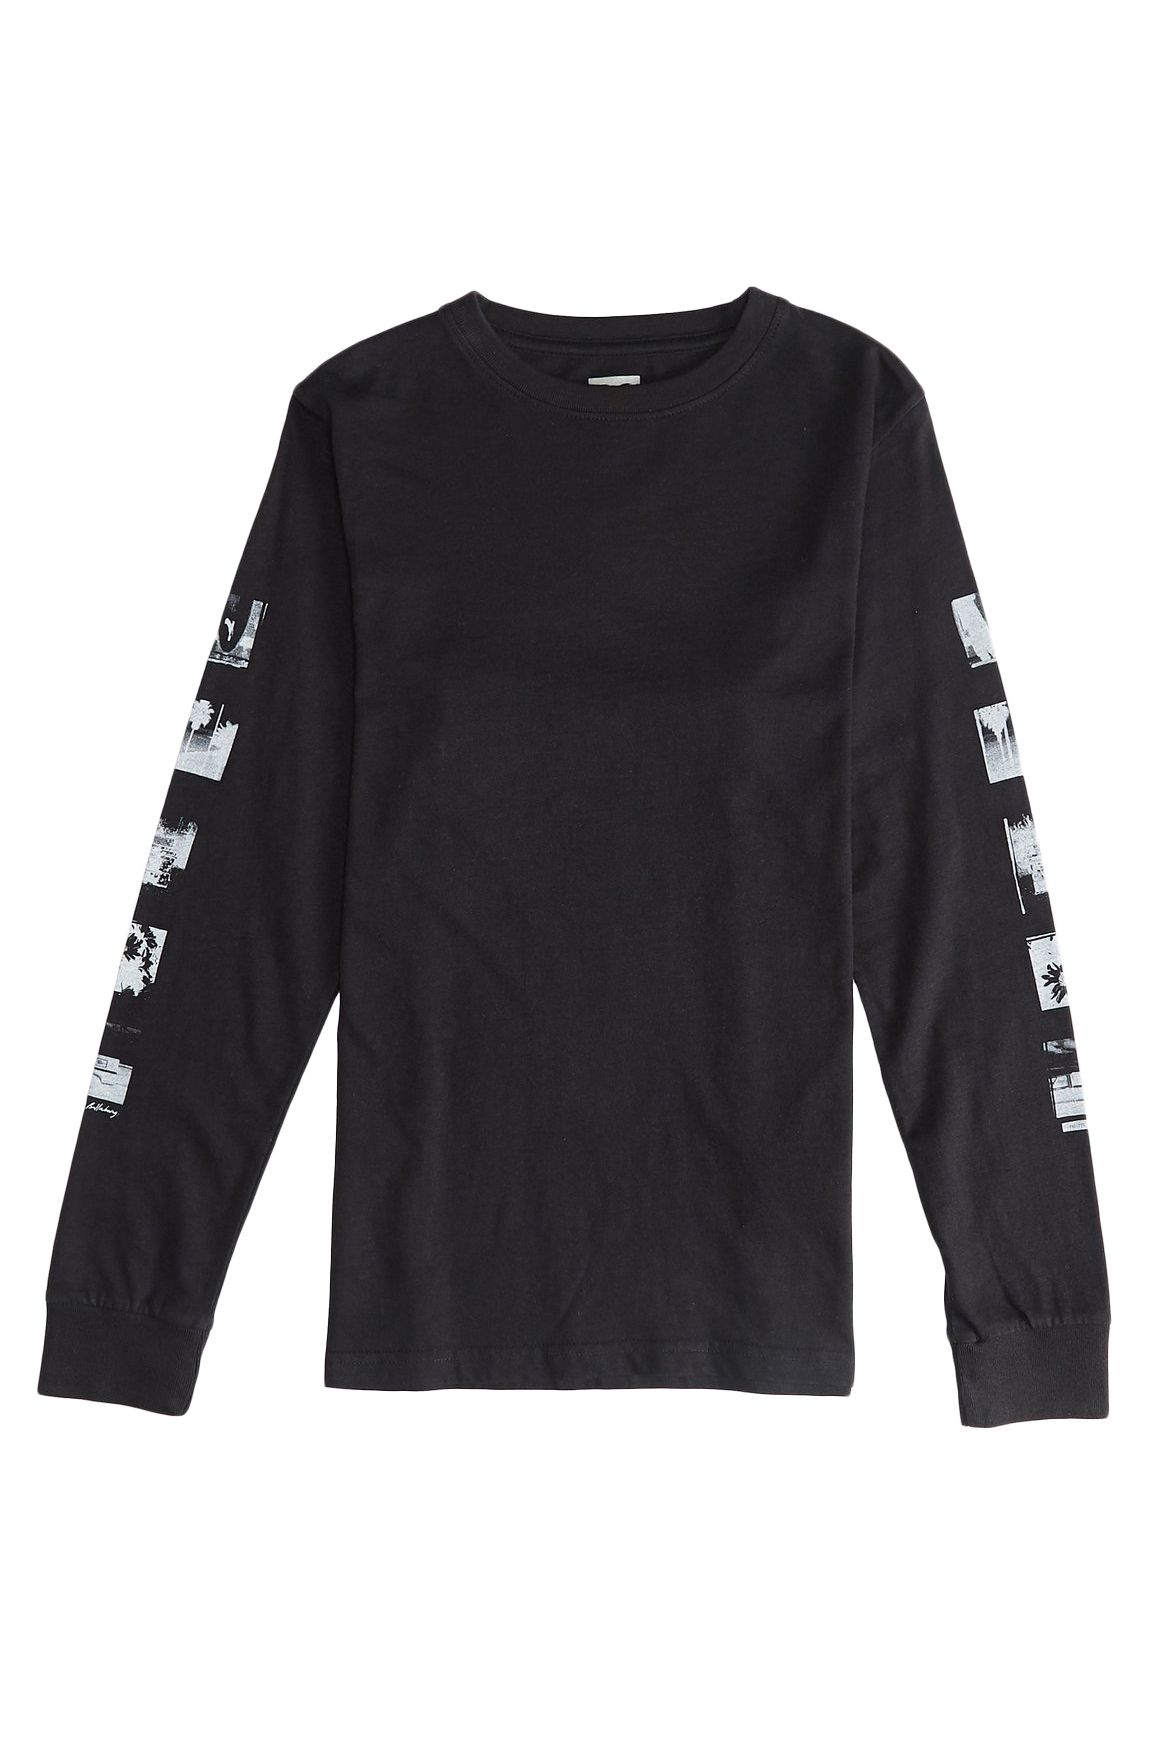 L-Sleeve Billabong EXPOSURE Black